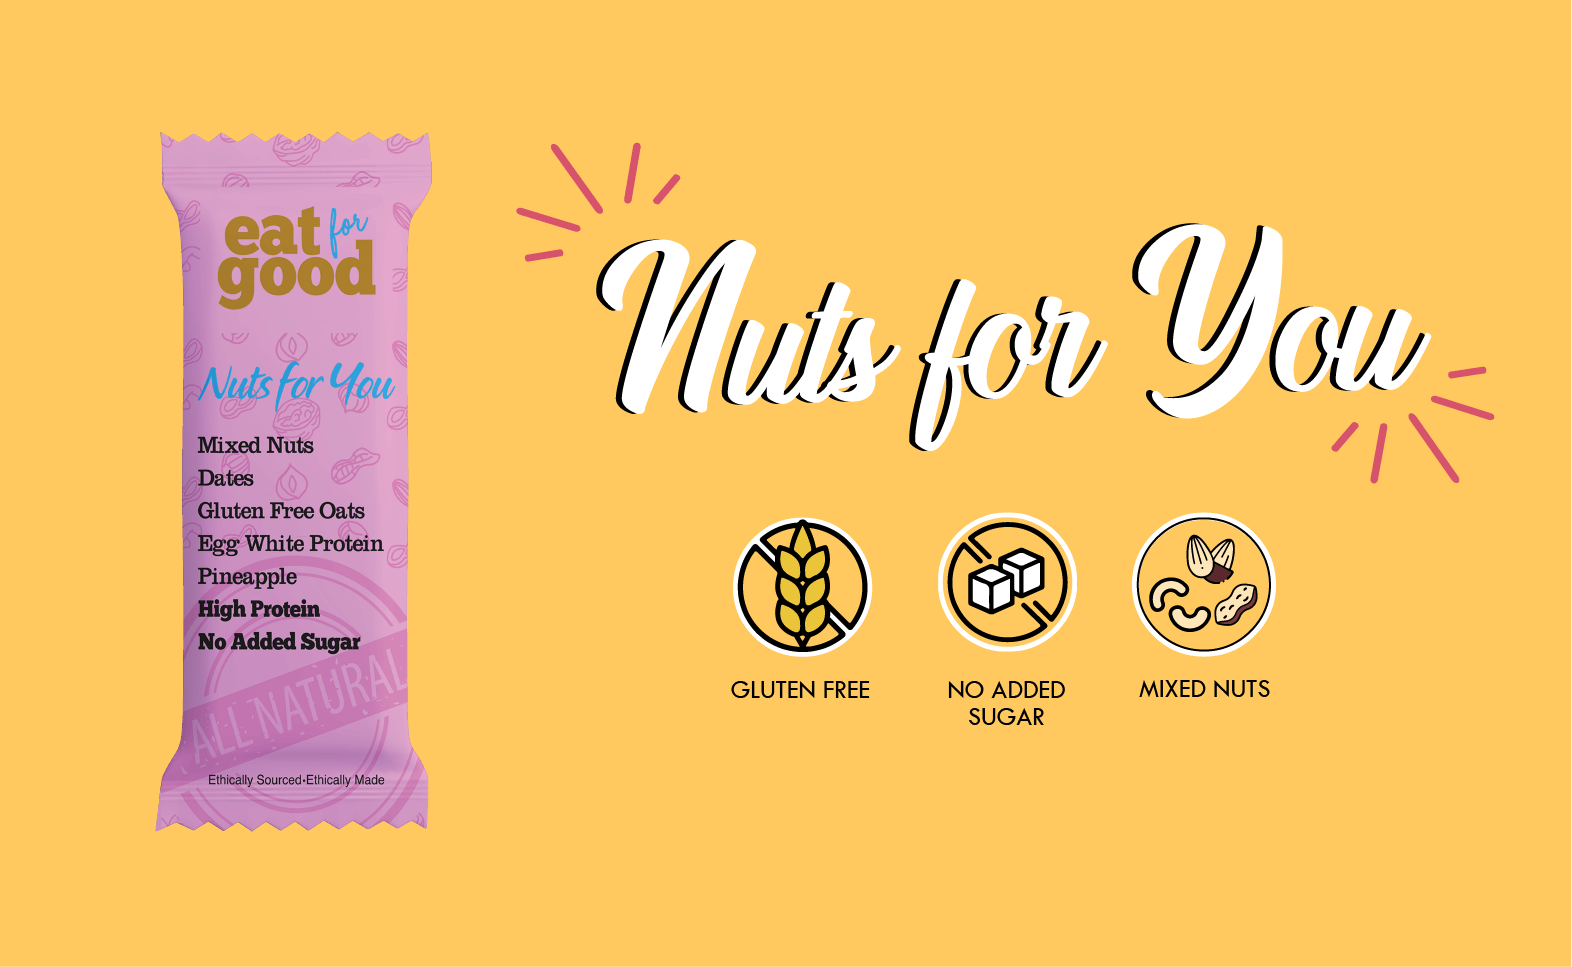 eat for good malaysia - Nuts For You